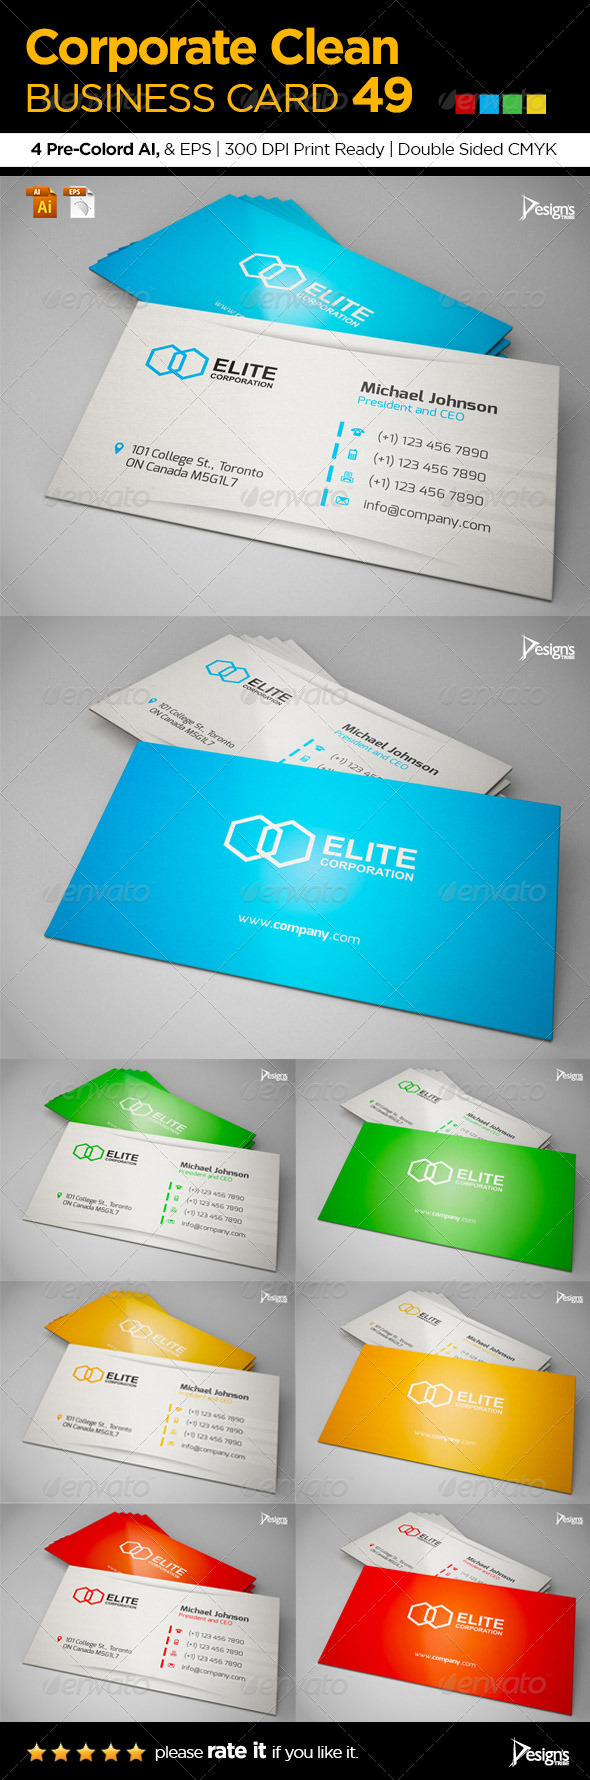 Corporate Clean Business Card 49